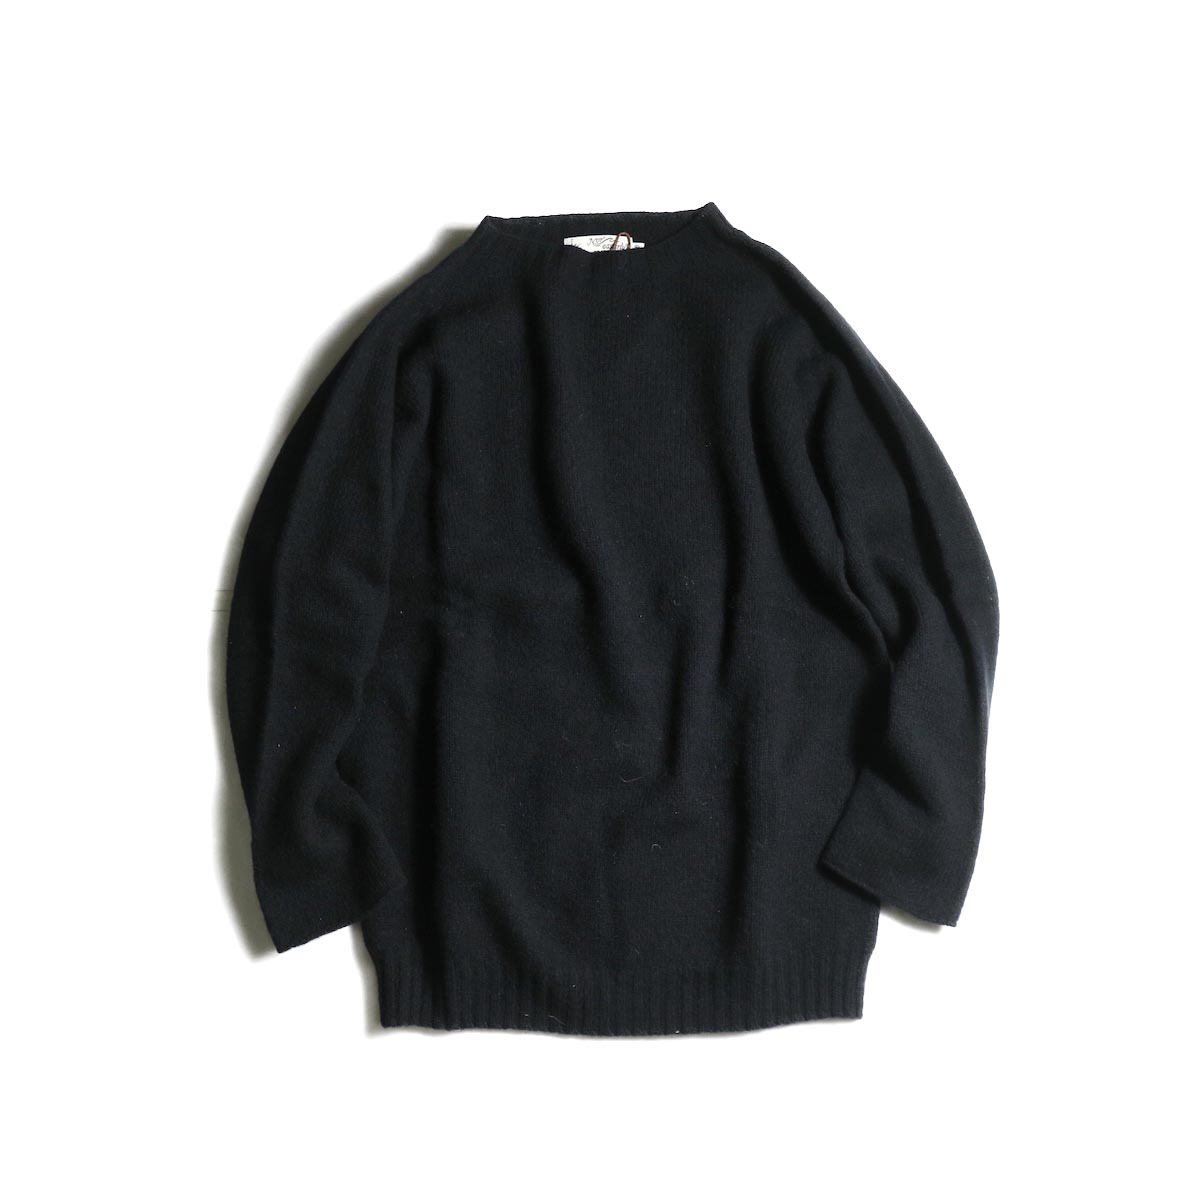 NOR'EASTERLY / L/S Crew Neck Knit (Black)